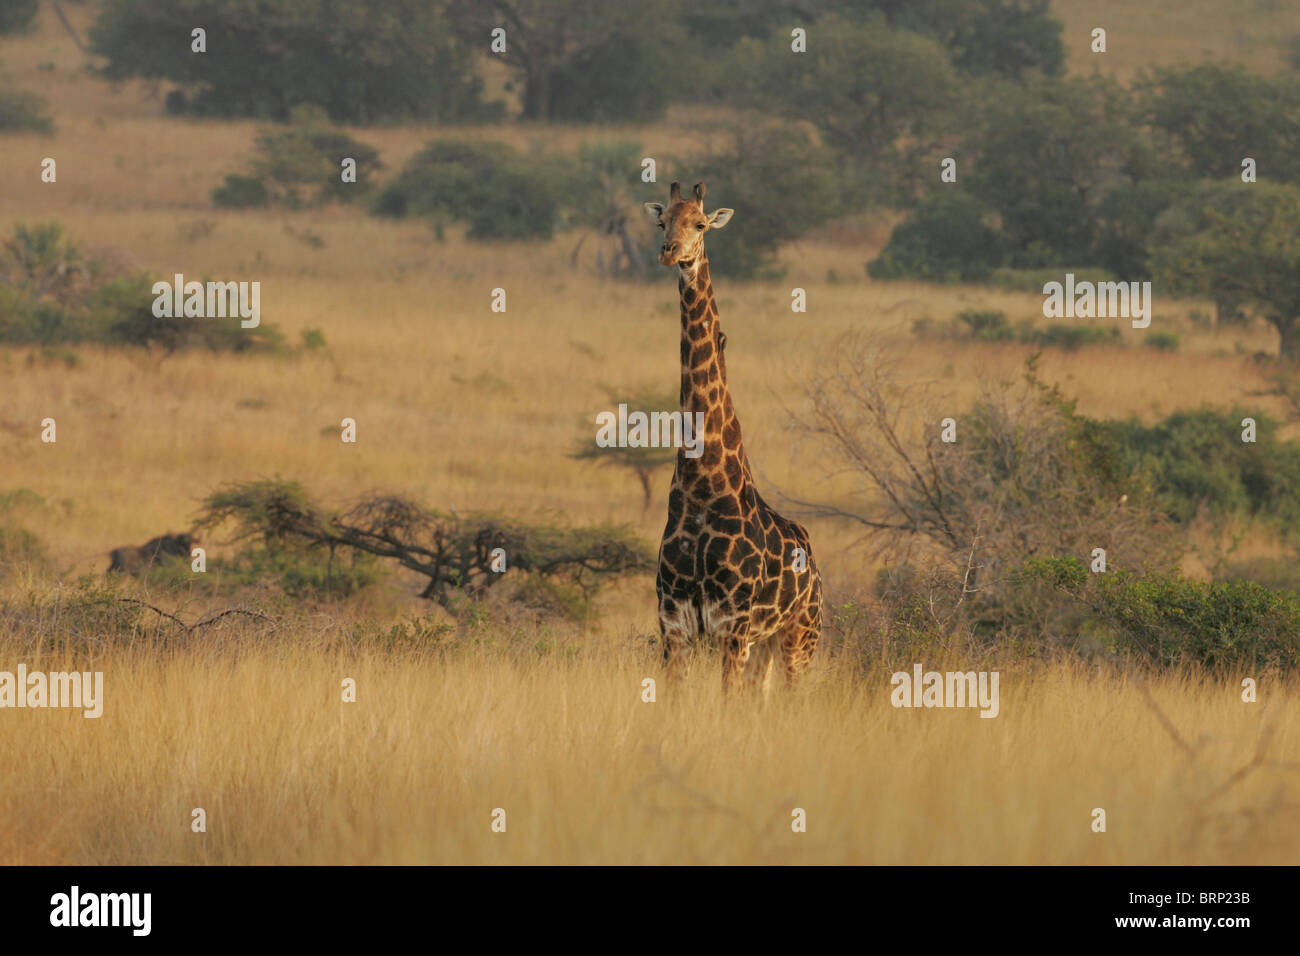 Scenic view of a giraffe standing in long grass - Stock Image